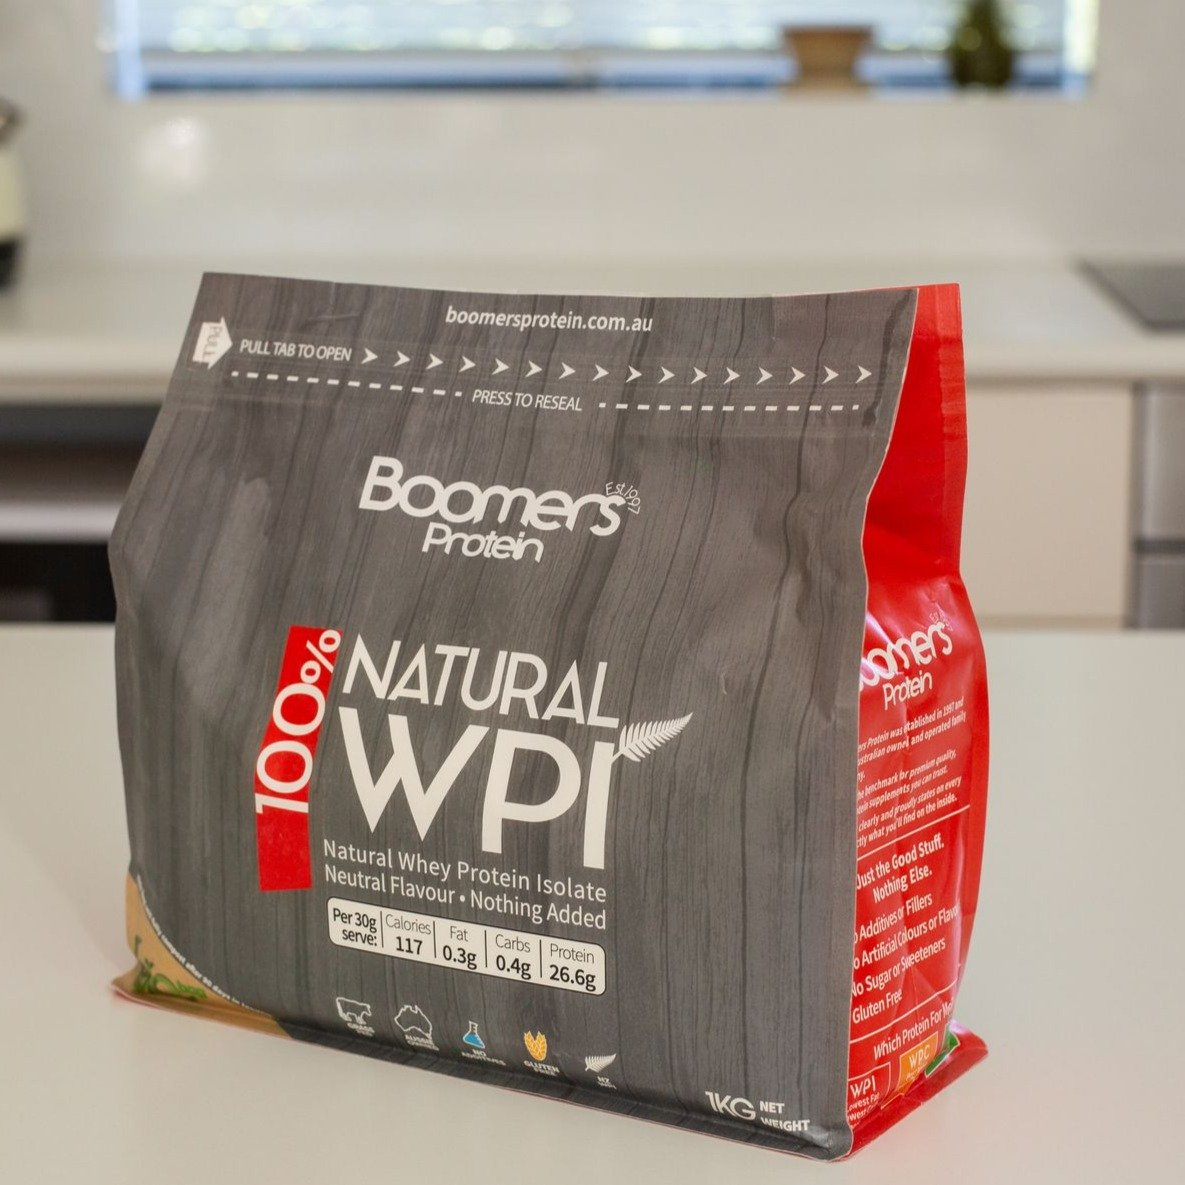 Boomers Protein Natural Whey Protein Isolate Neutral Flavour 1kg